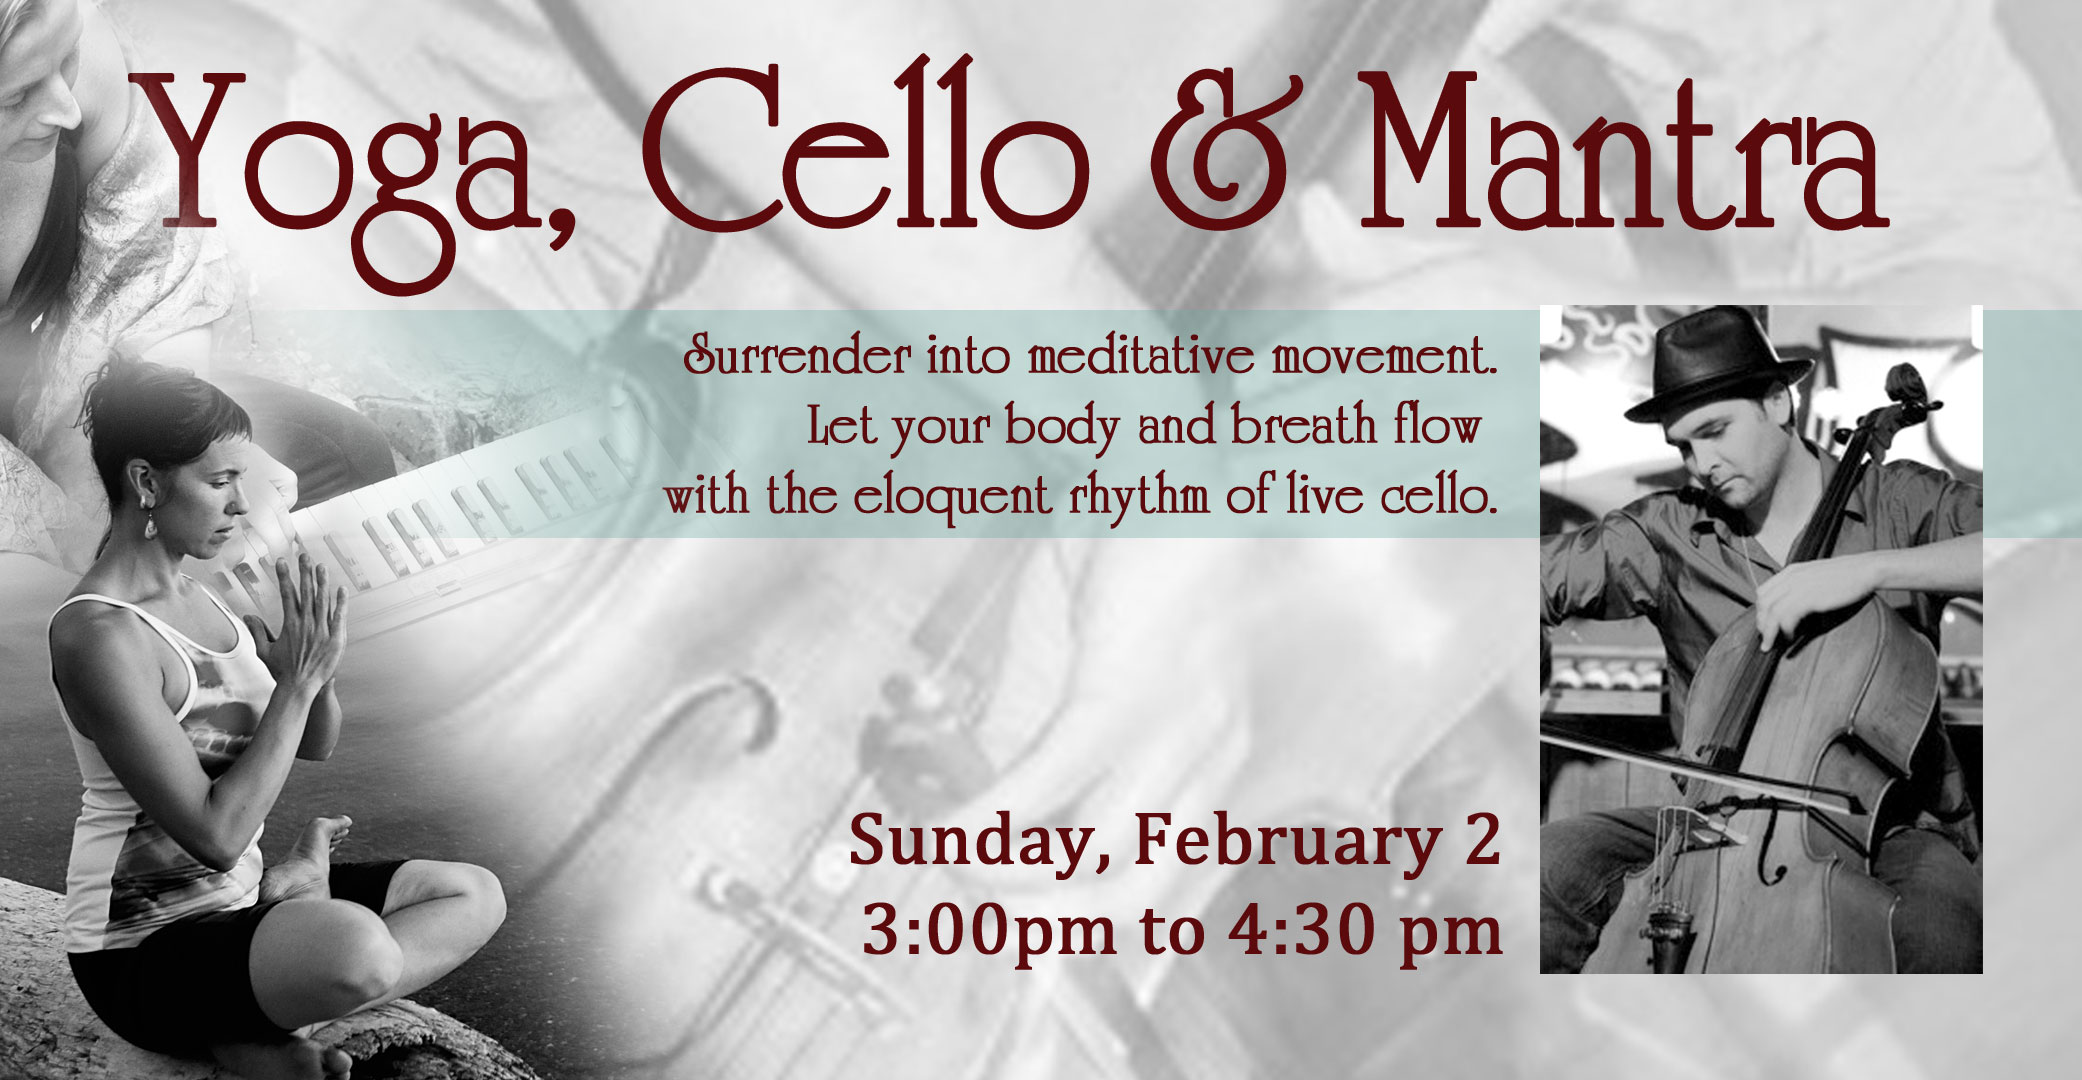 Yoga Cello and Mantra: Sandpoint ID